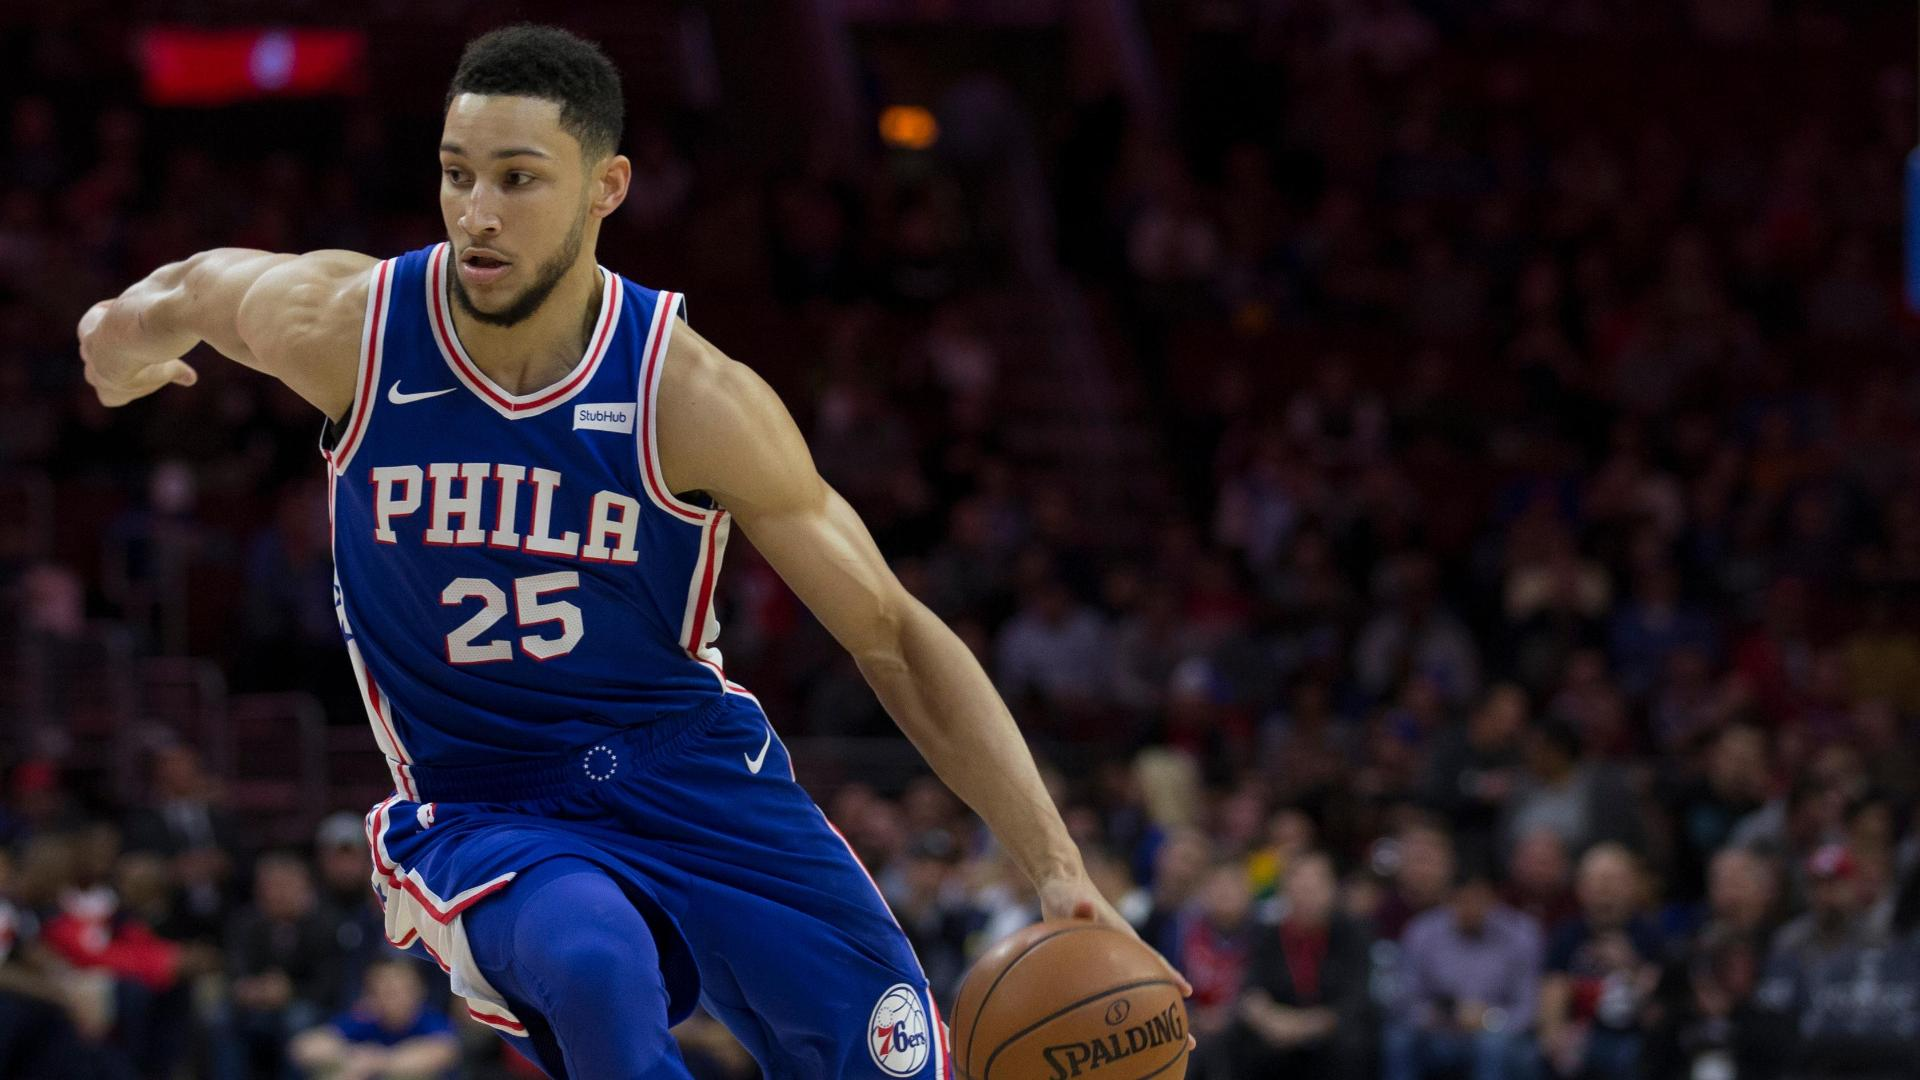 http://a.espncdn.com/media/motion/2017/1214/dm_171214_nba_ben_simmons_aussie_rules_rev11307/dm_171214_nba_ben_simmons_aussie_rules_rev11307.jpg